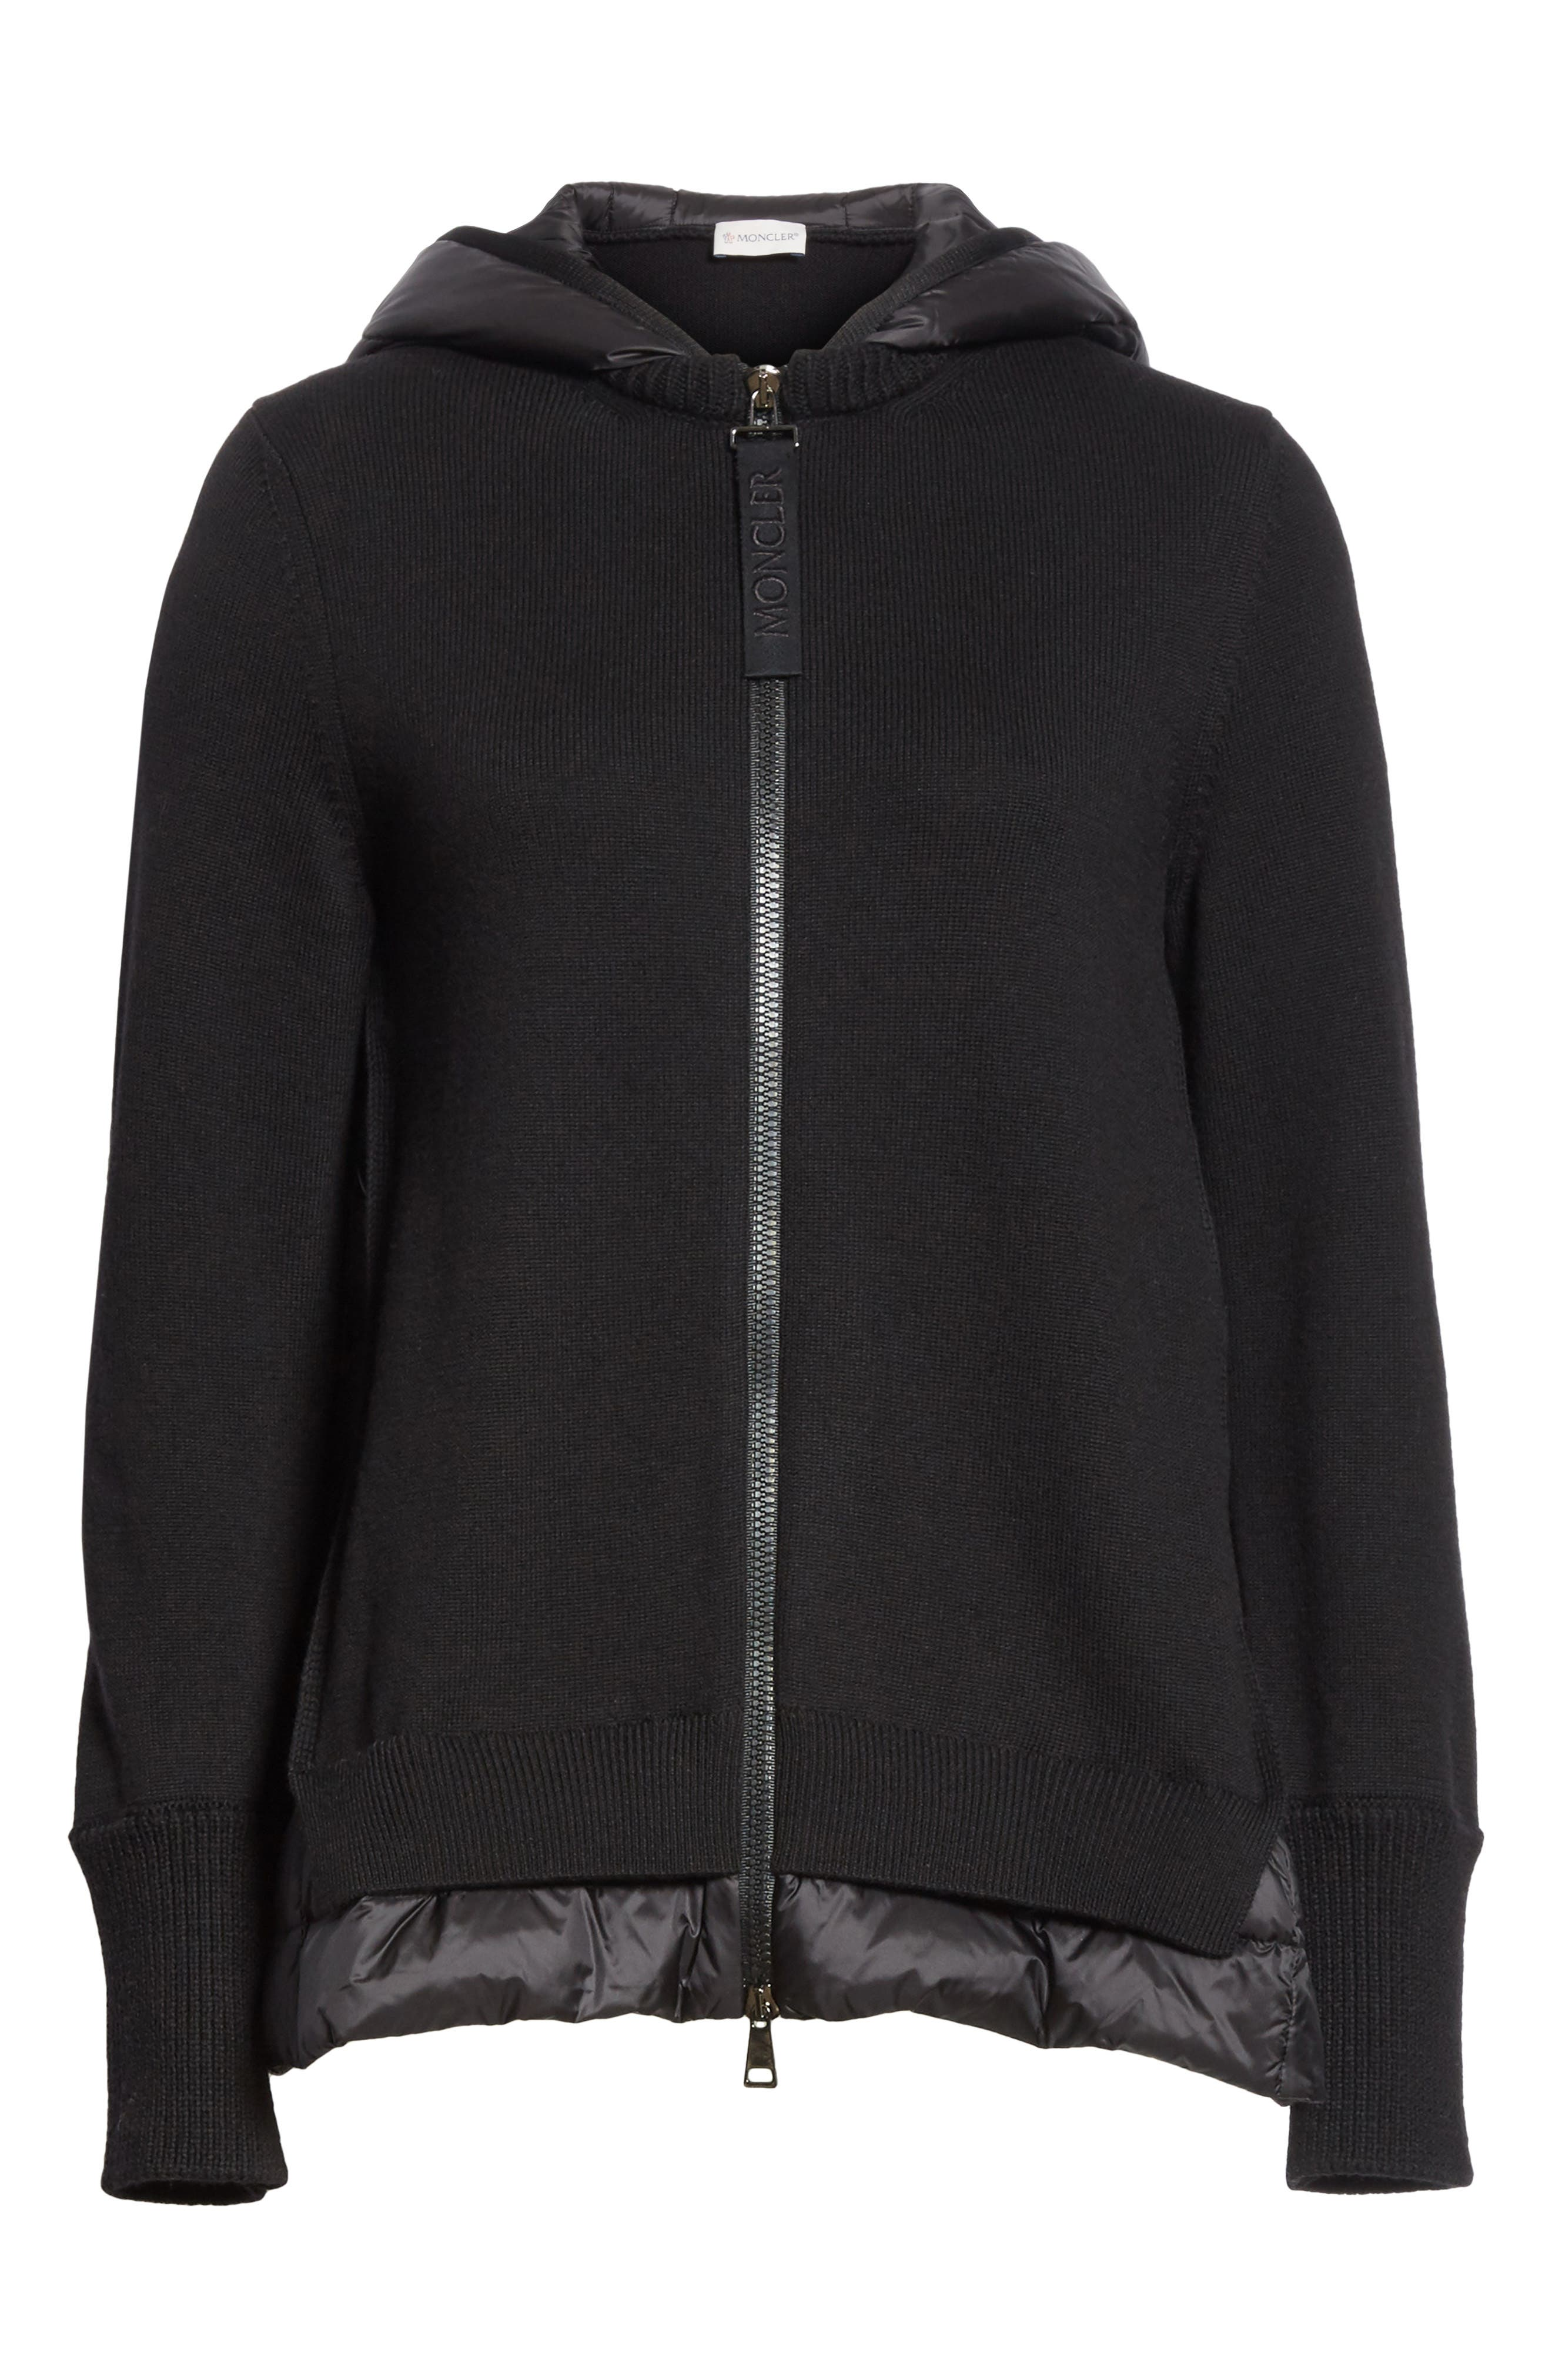 MONCLER, Hooded Quilted Cardigan, Alternate thumbnail 5, color, BLACK